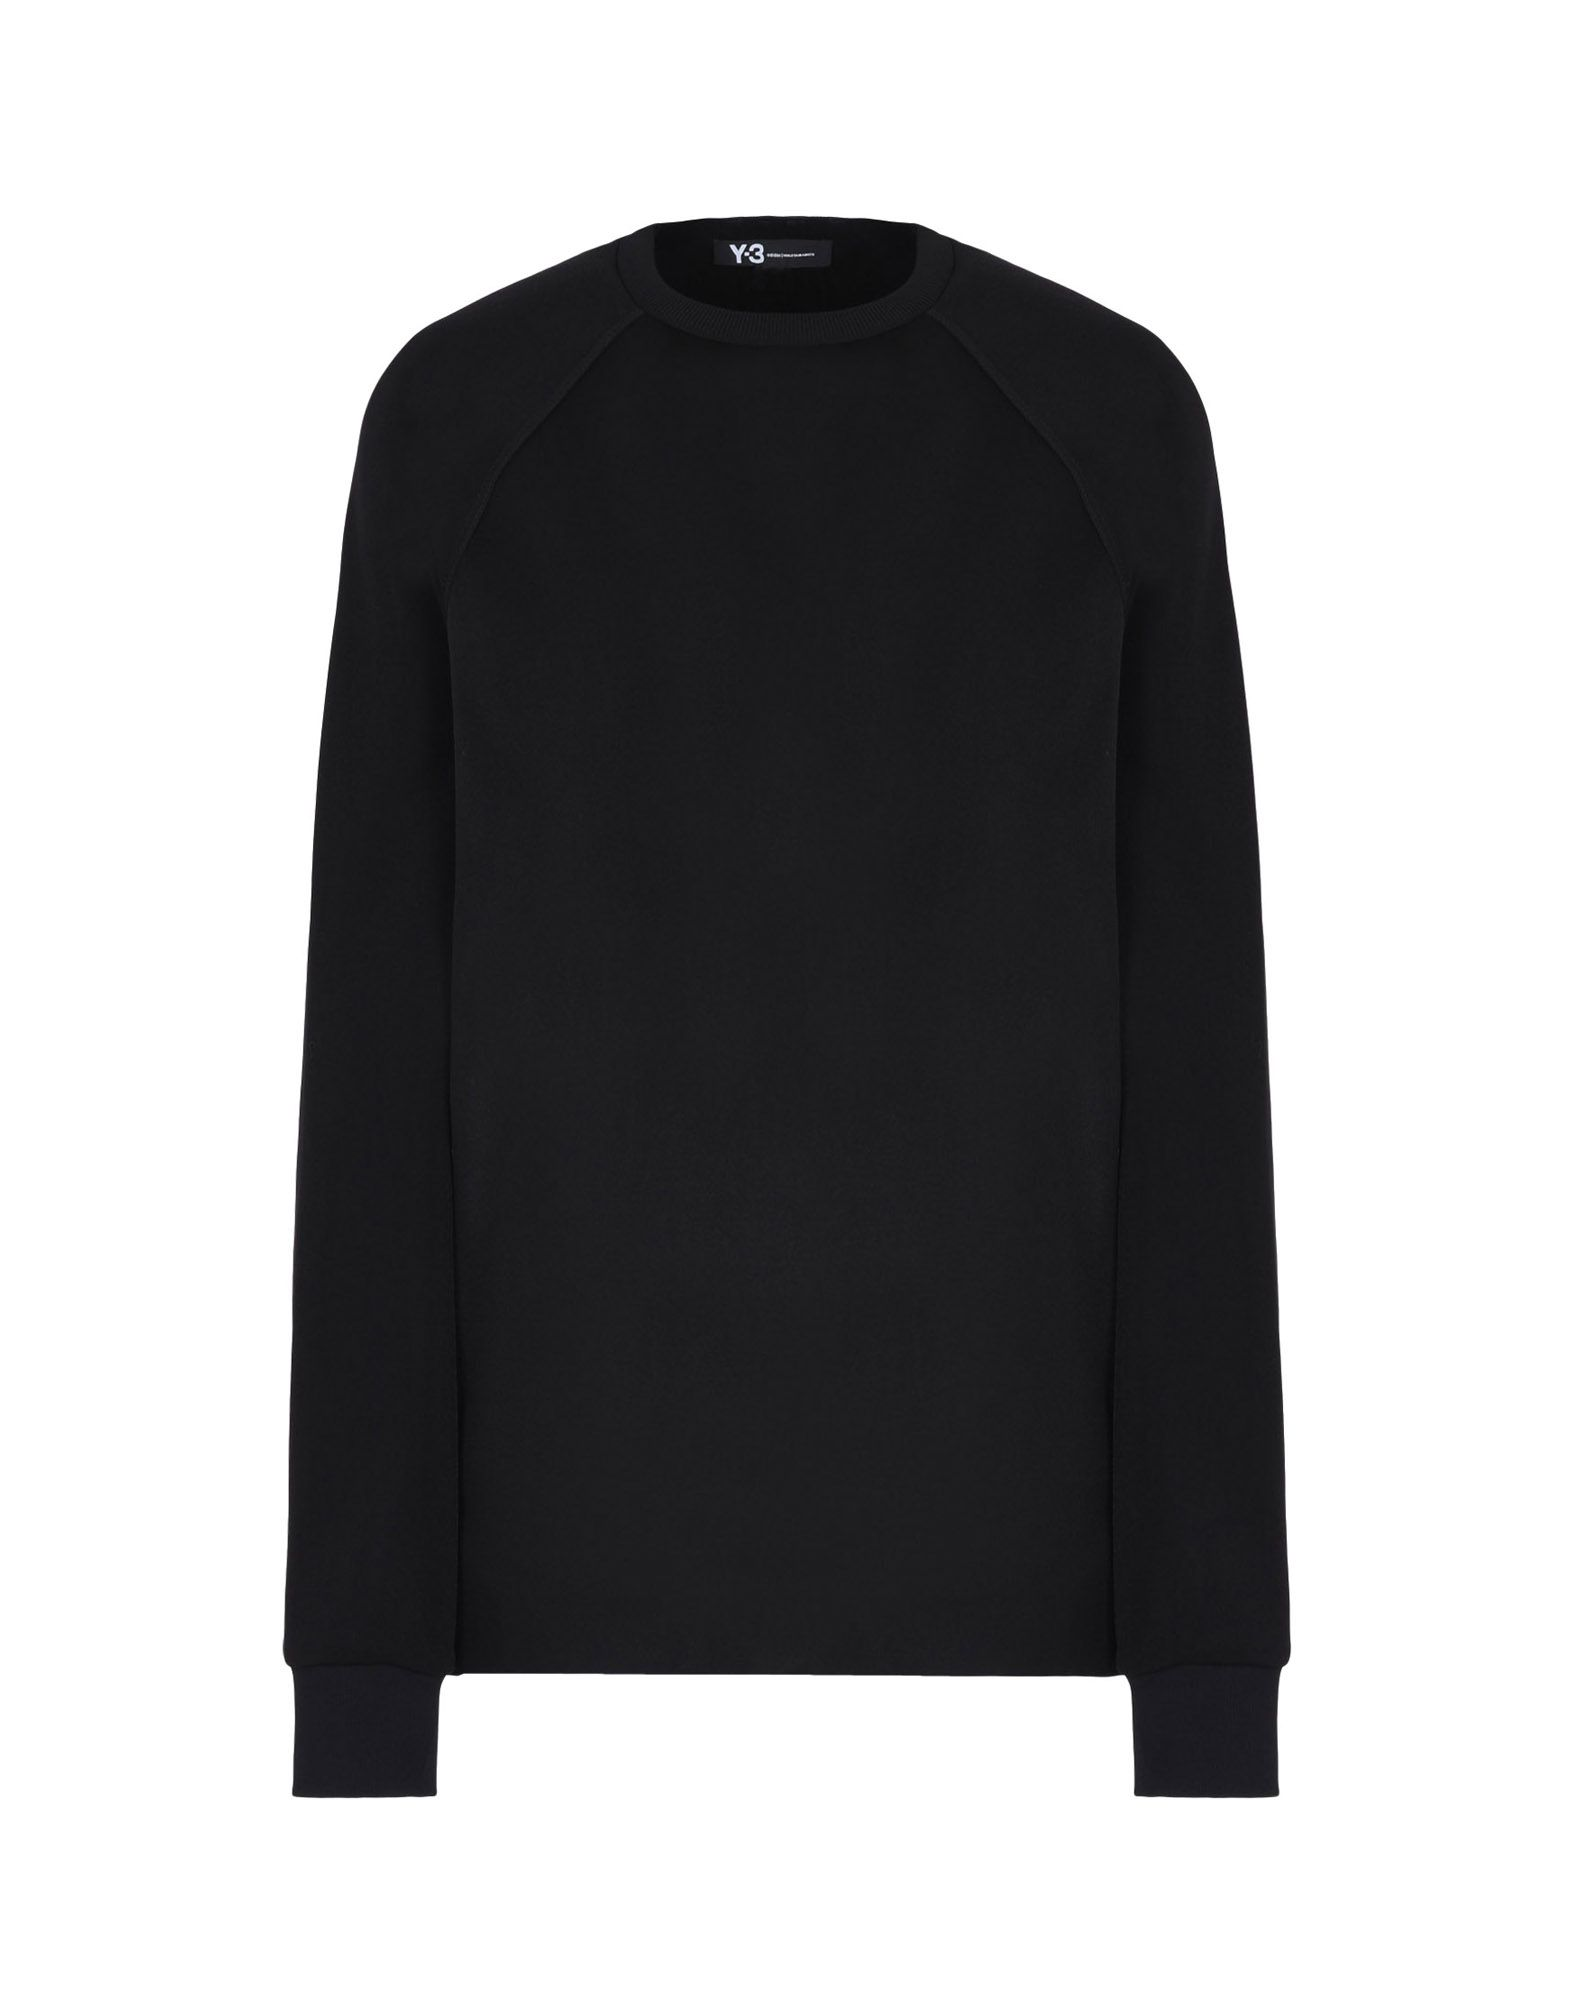 Y-3 Y-3 SPACER MESH SWEATER Sweatshirt Man f